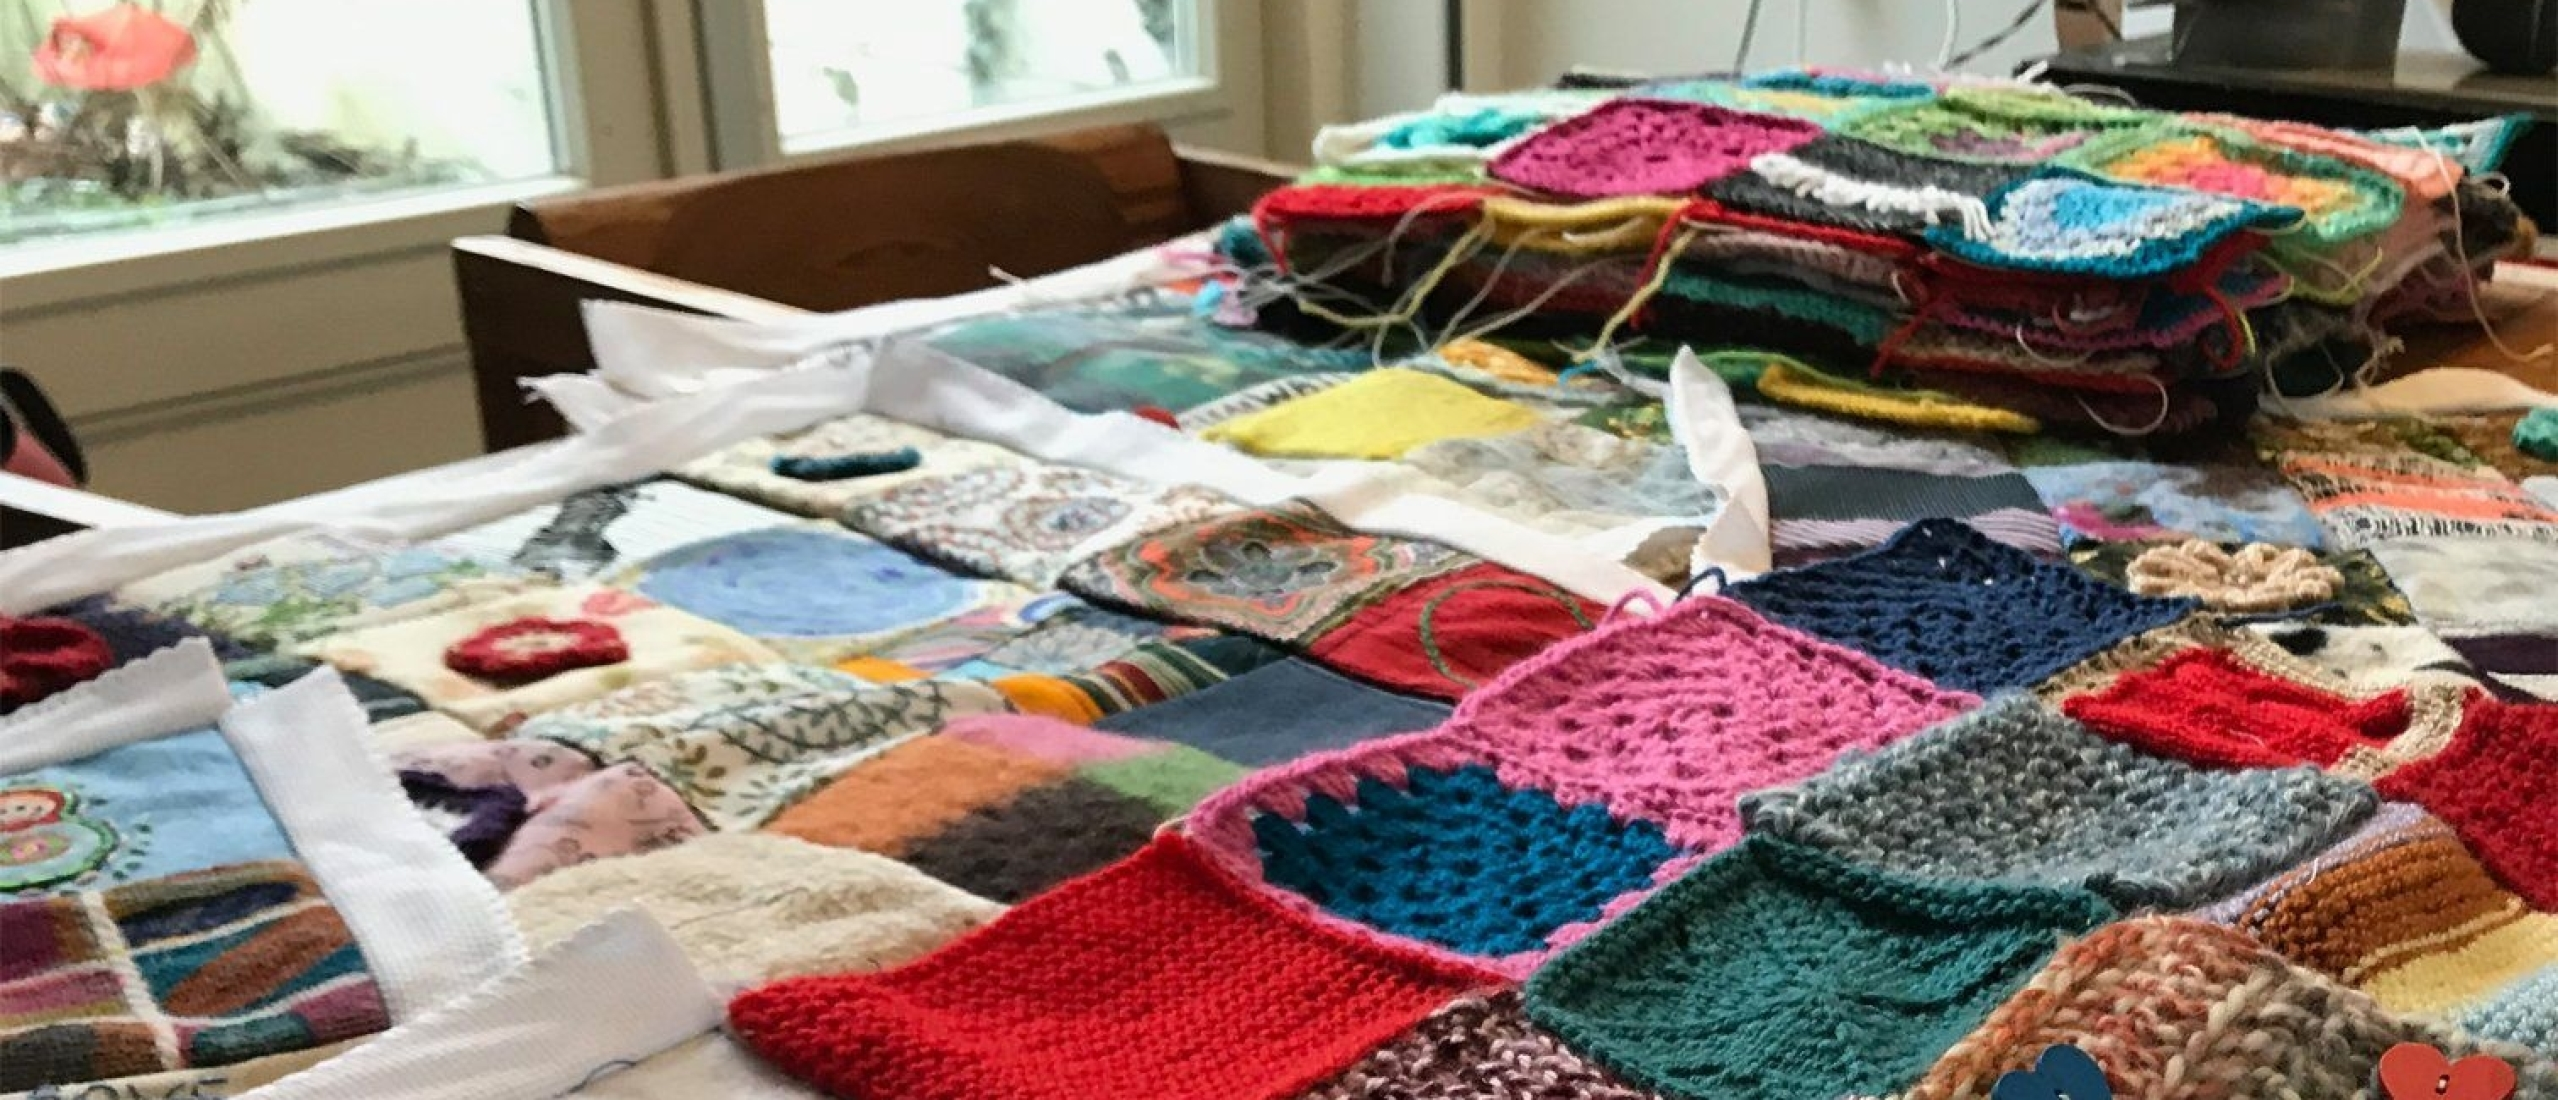 Give comfort to the planet by gathering hundreds of little blankets: quilt, knits and crochet all welcome